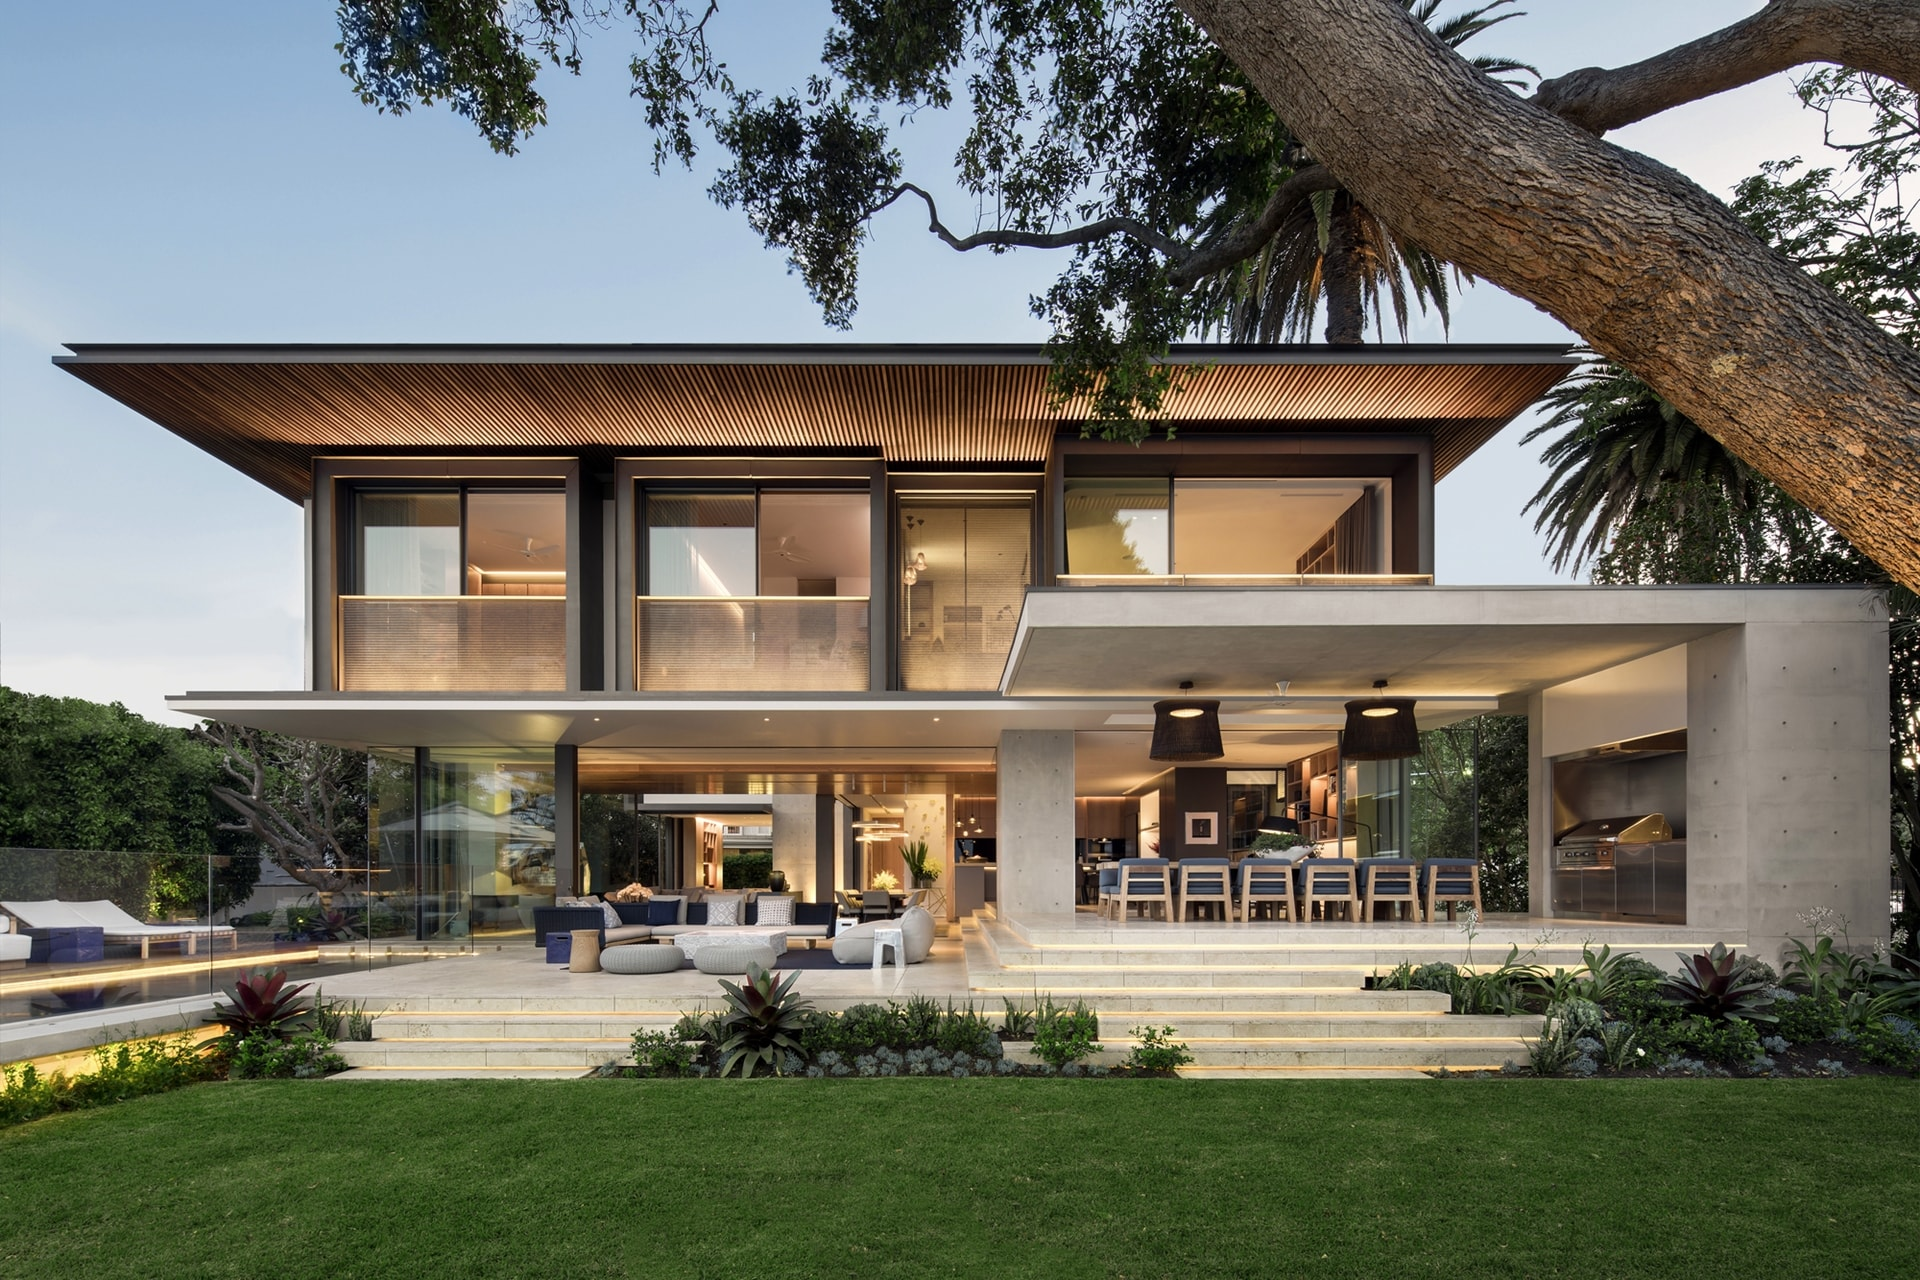 Amazing-house-design-with-10-ideas-for-inspiration-Architecture-Beast-09-min